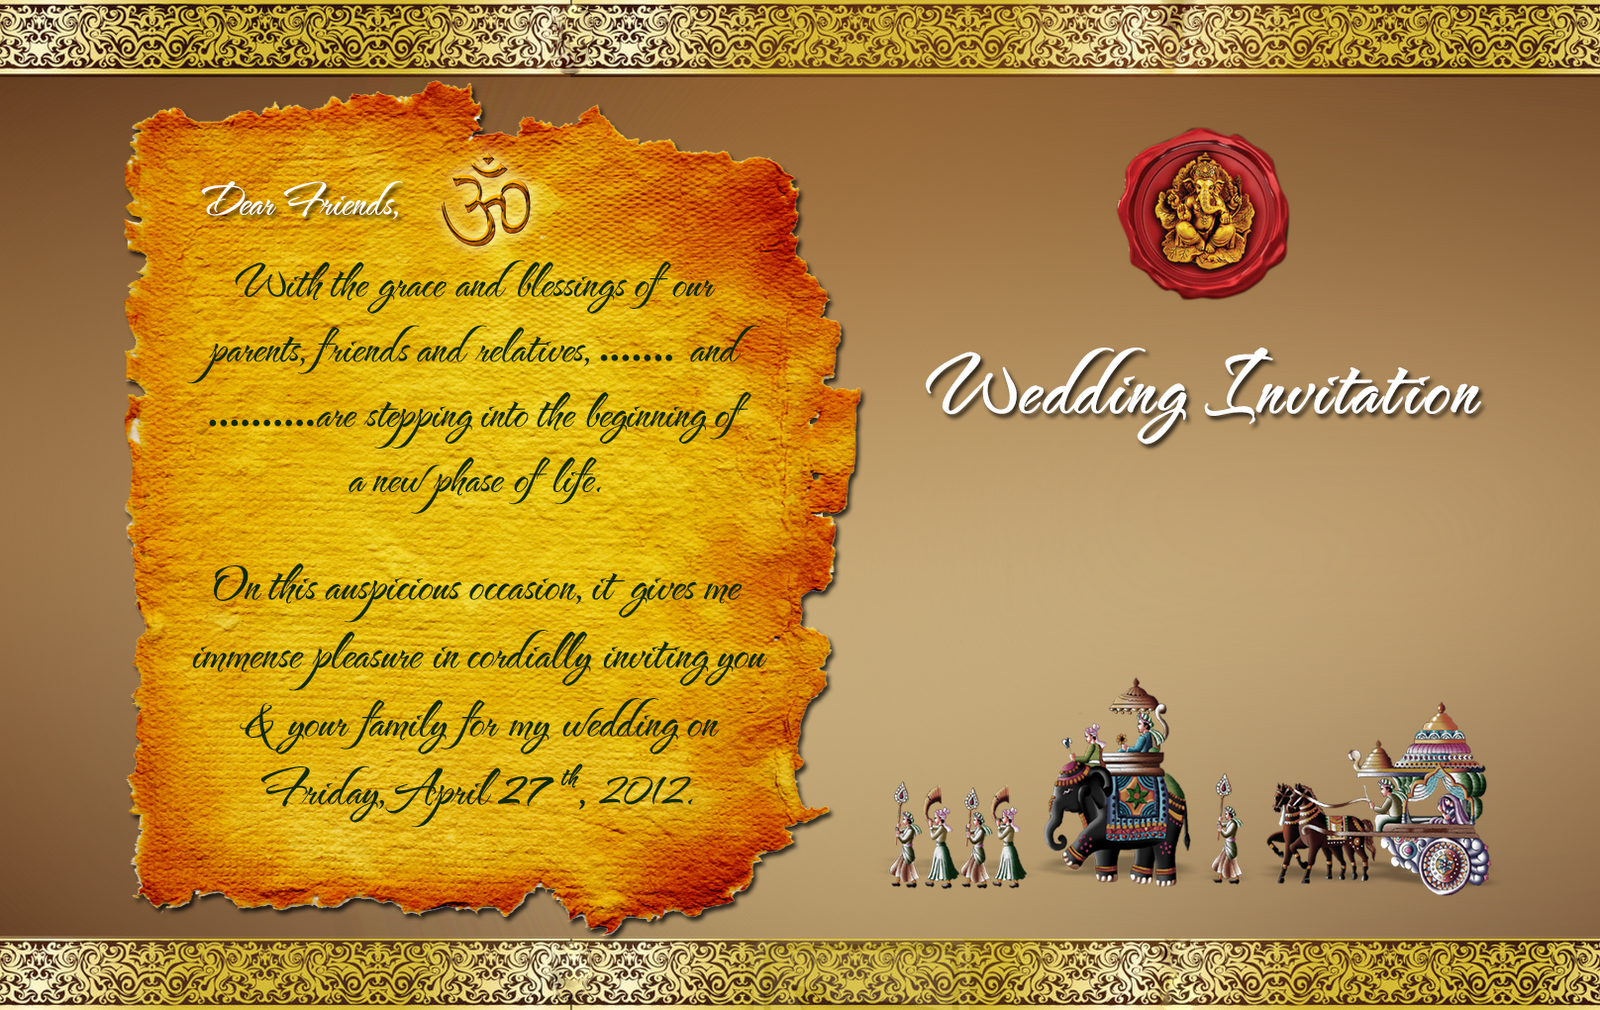 Indian Wedding Card Design Psd Files Free Downloadwedding Card - Wedding invitation templates: wedding card invitation templates free download